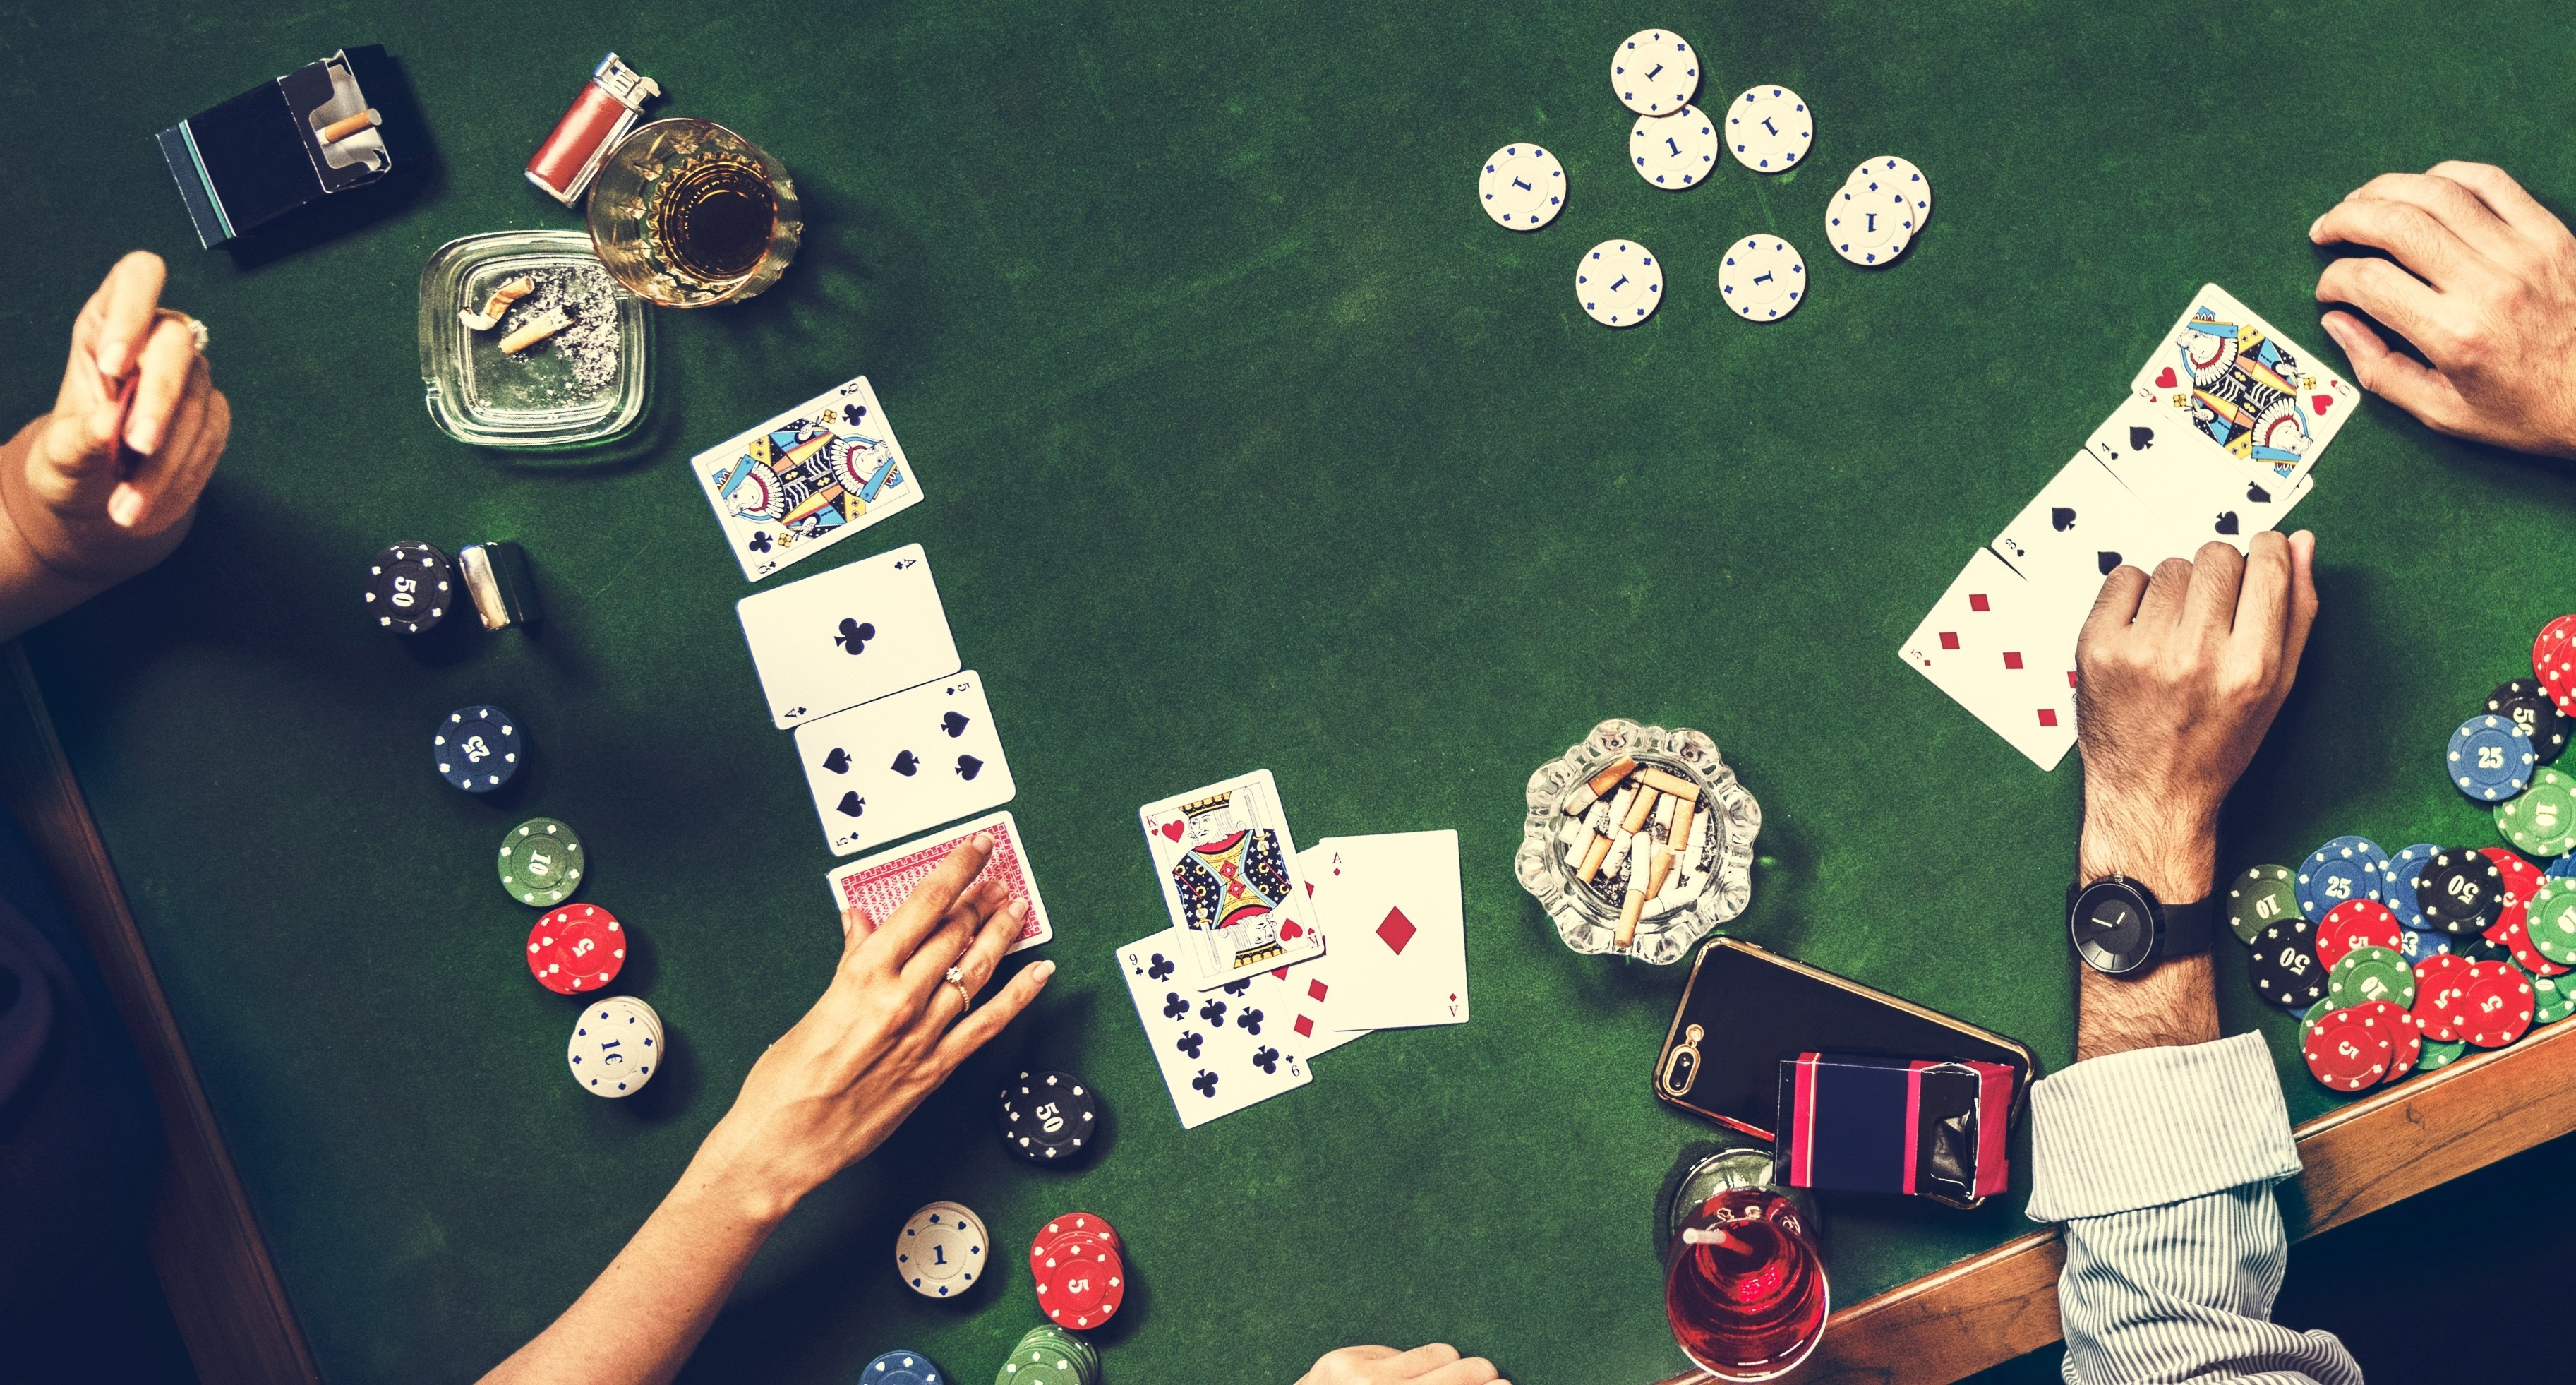 Casino chips and card game.